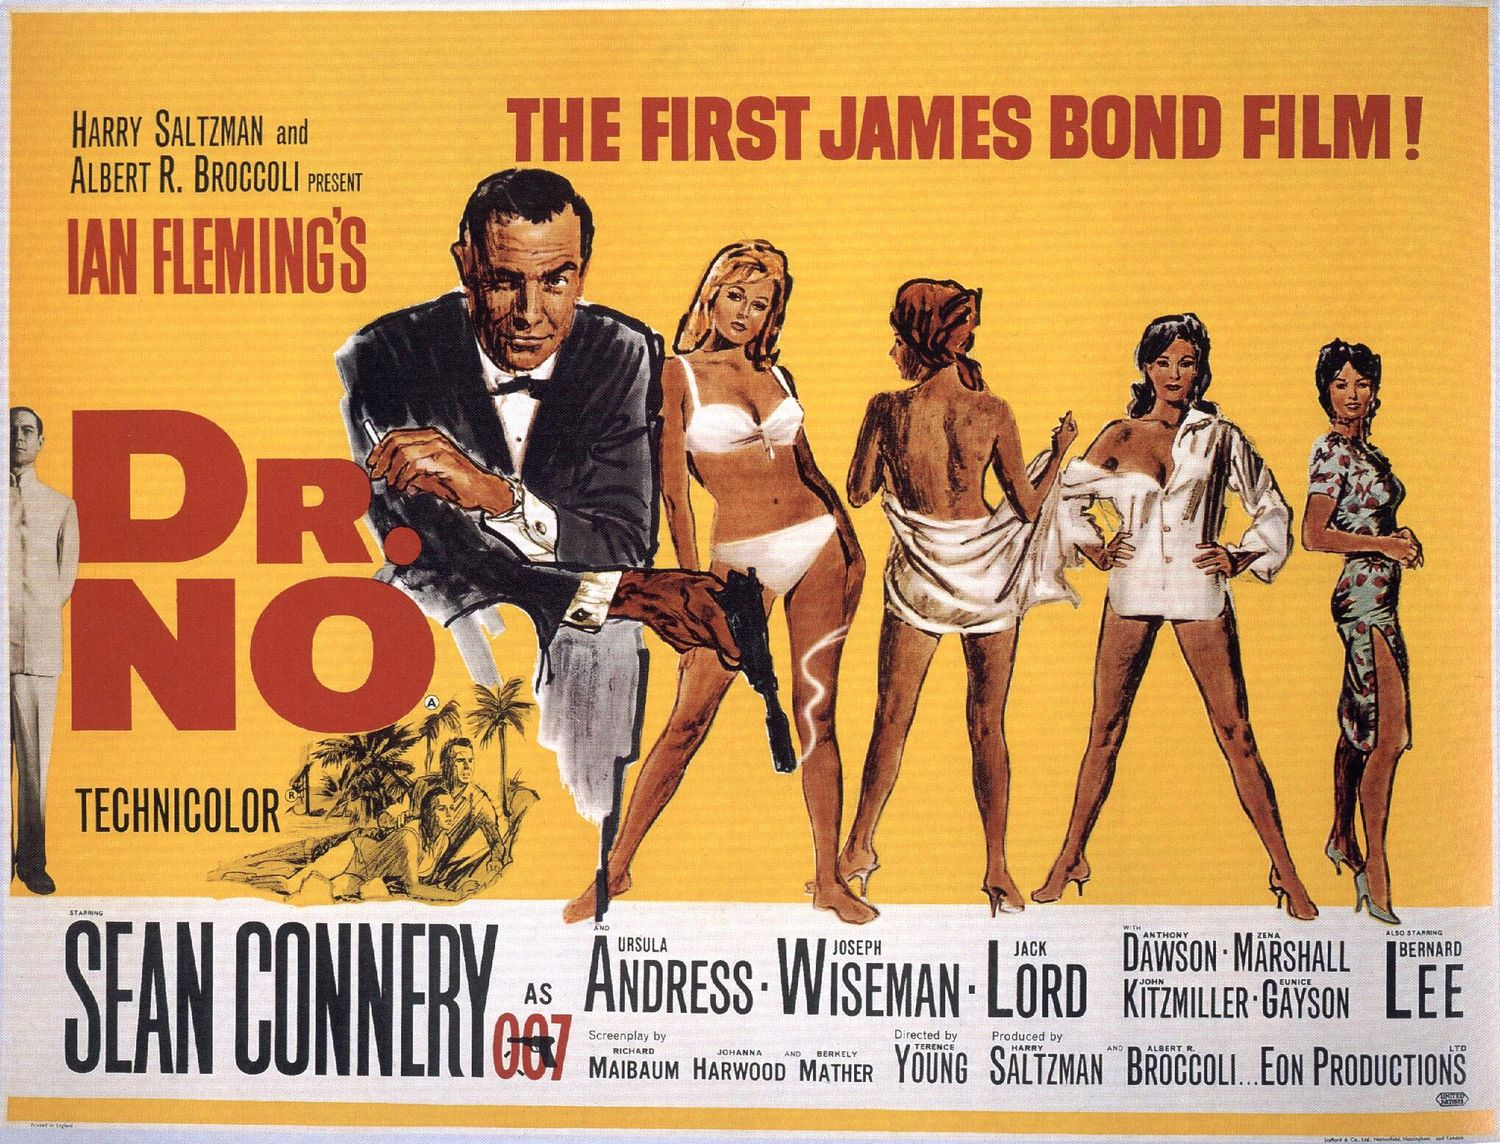 Consider, james bond movies can help